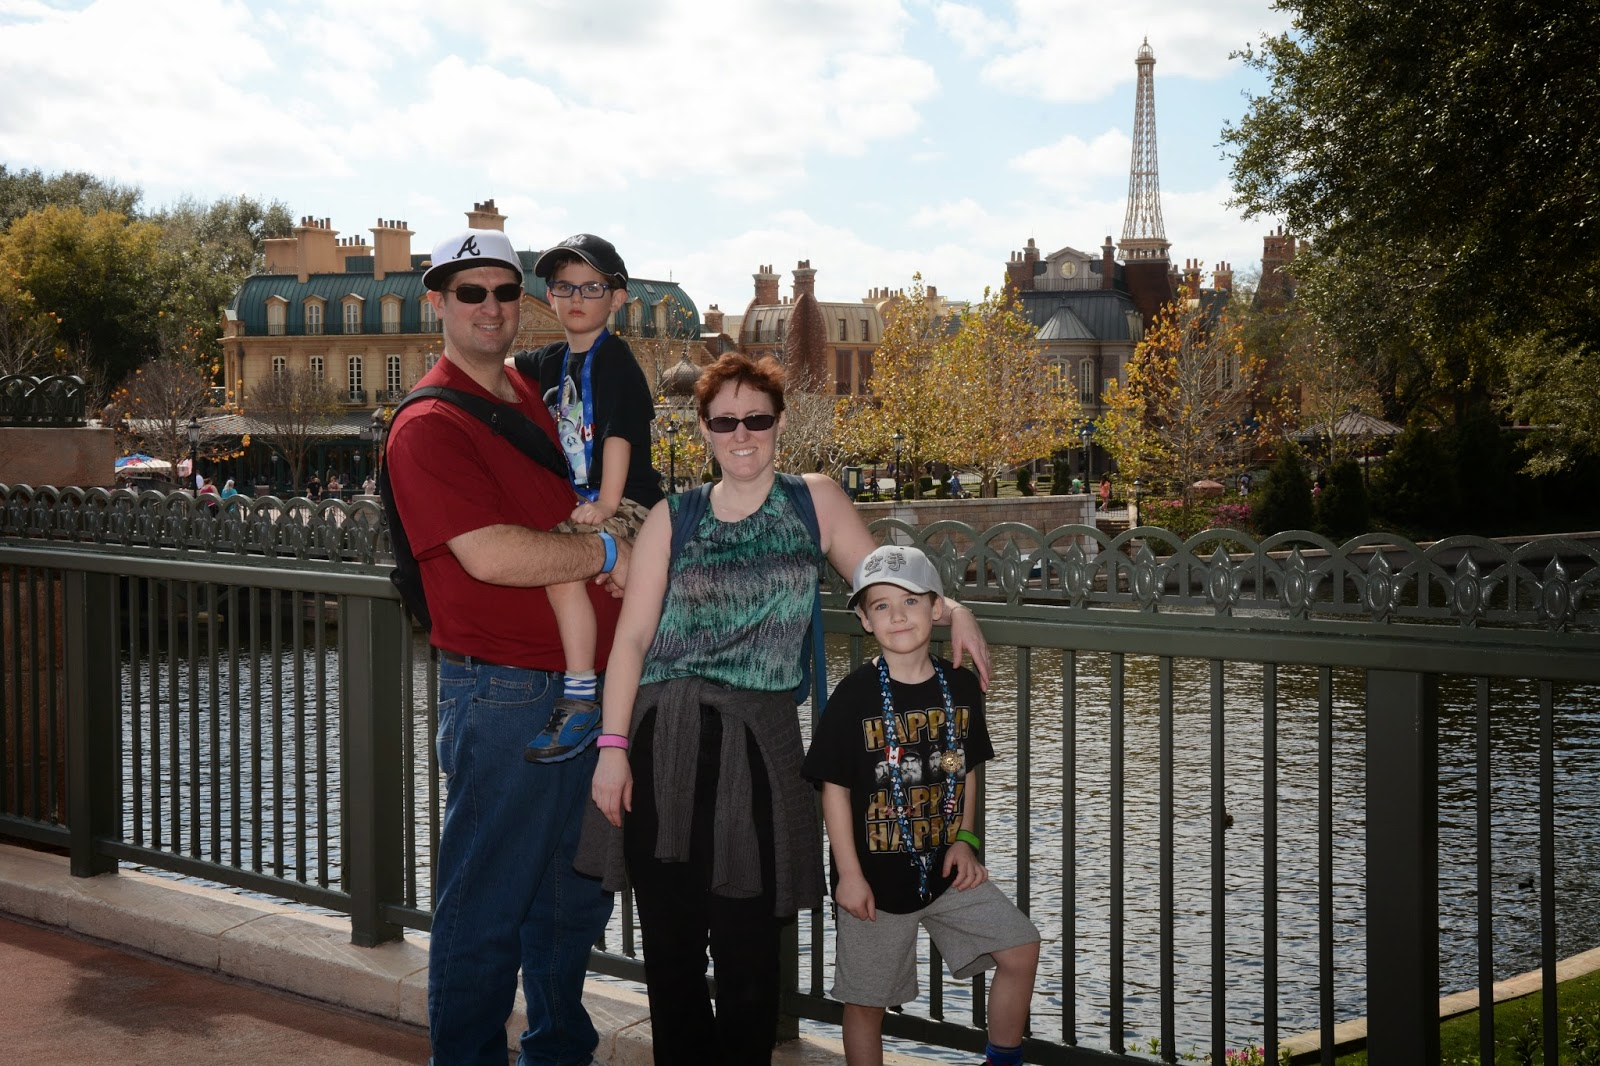 EPCOT world showcase, paris, eiffel tower, france, disney, florida, family vacatio